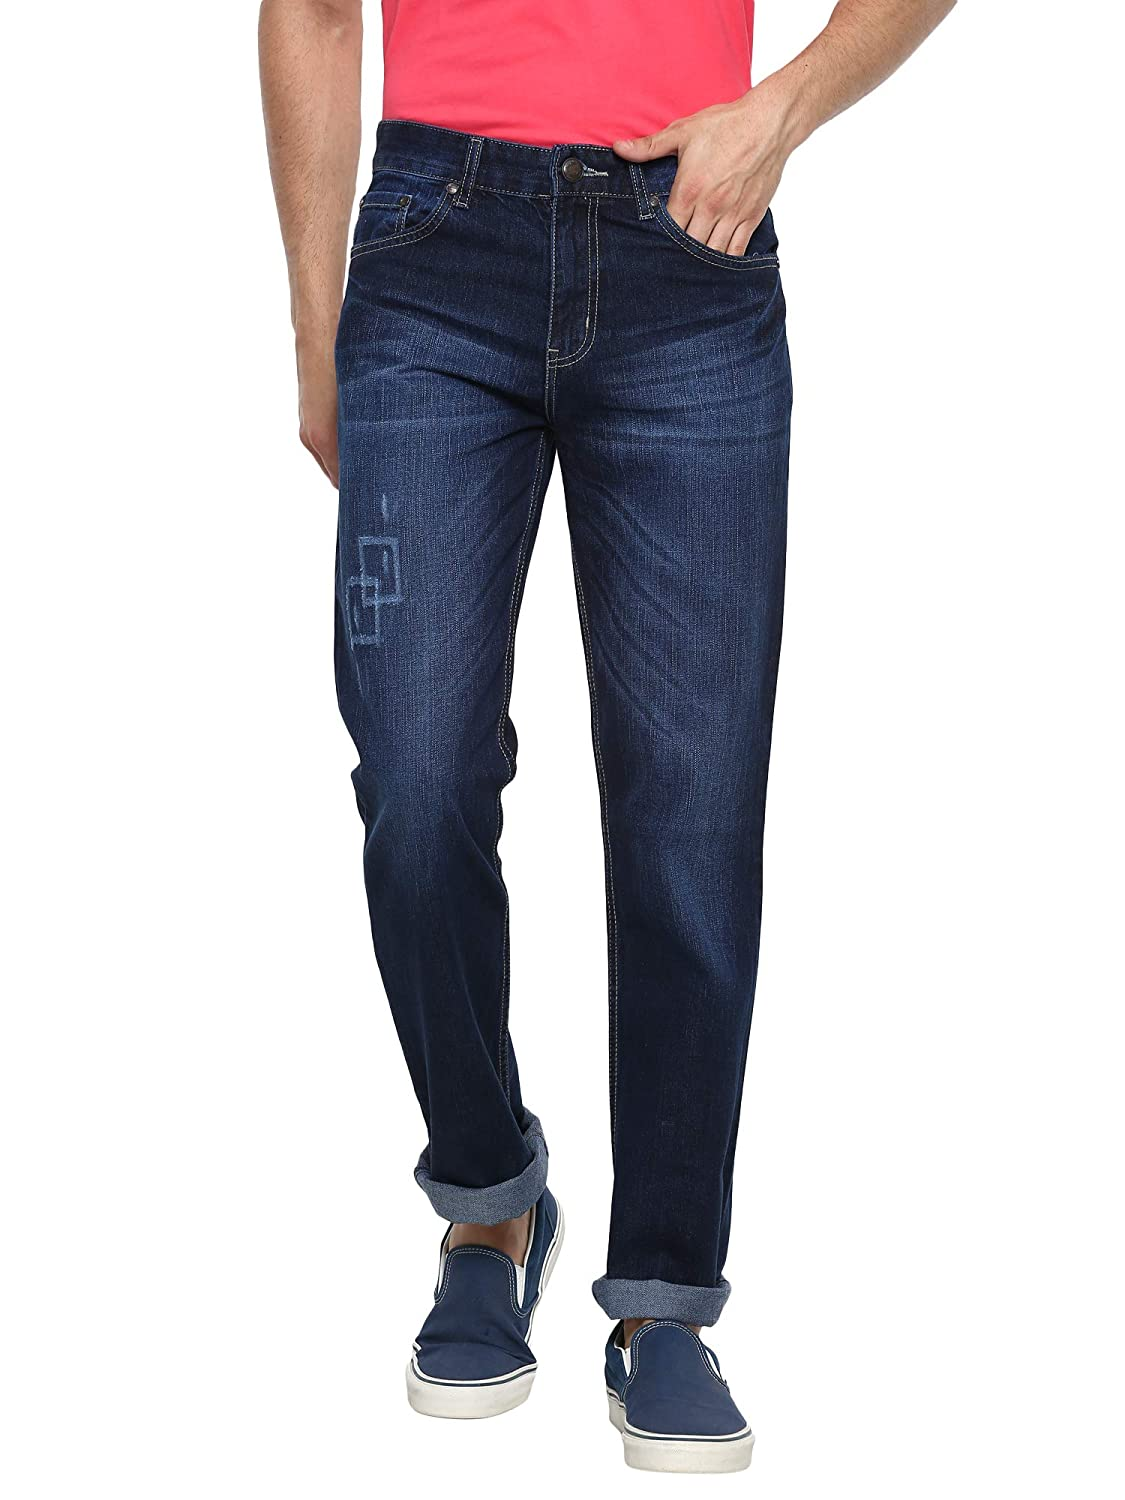 AMERICAN CREW Men's Straight Fit Jeans (Non Stretch)